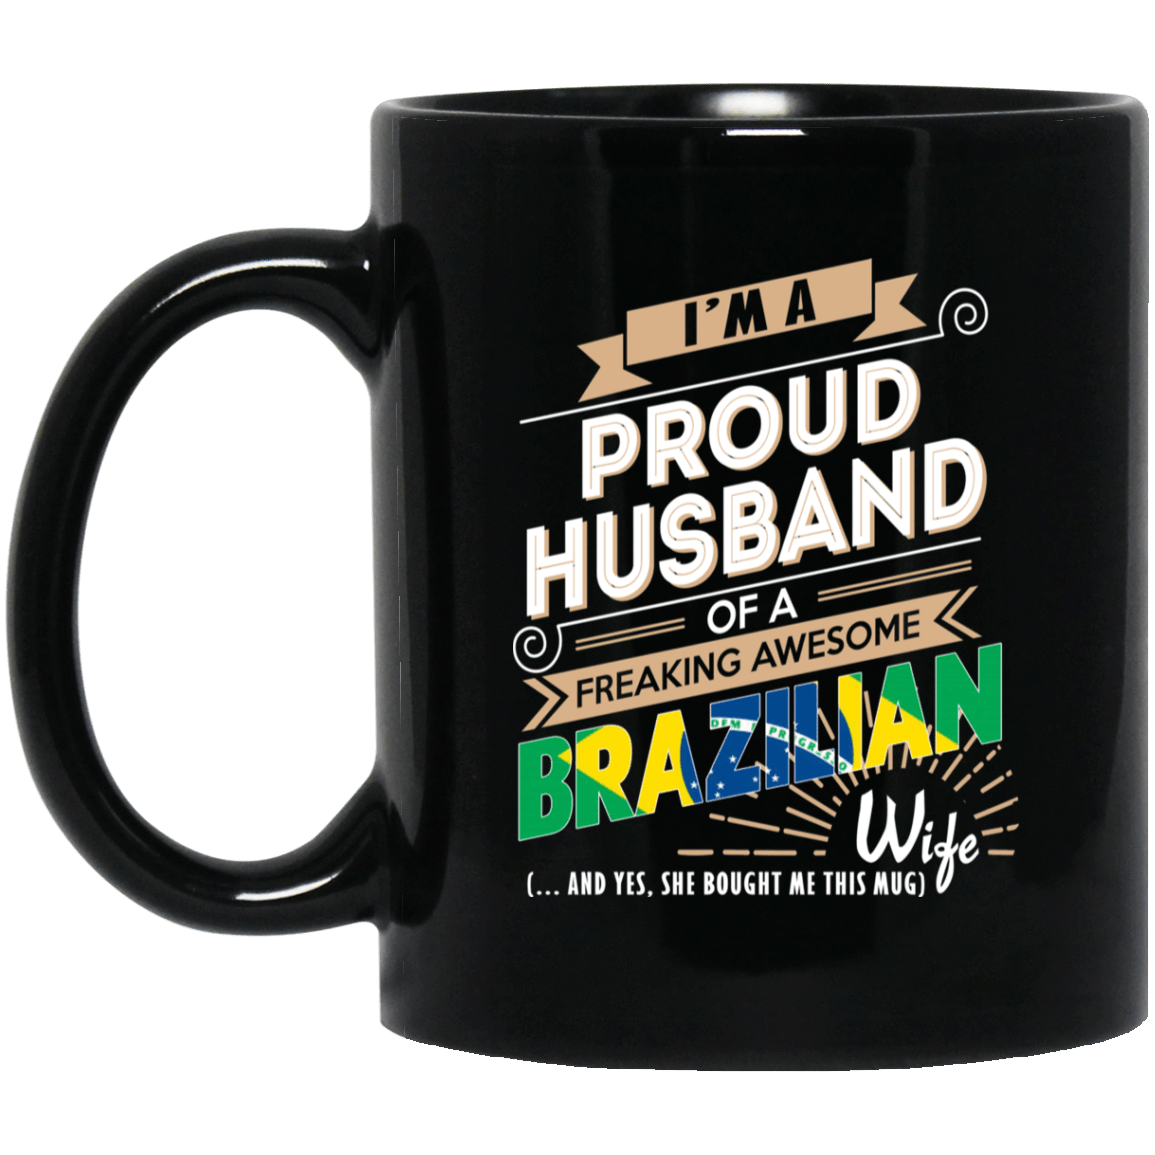 Proud Husband Of A Freaking Awesome Brazilian Wife Mug 1065-10181-72136605-49307 - Tee Ript